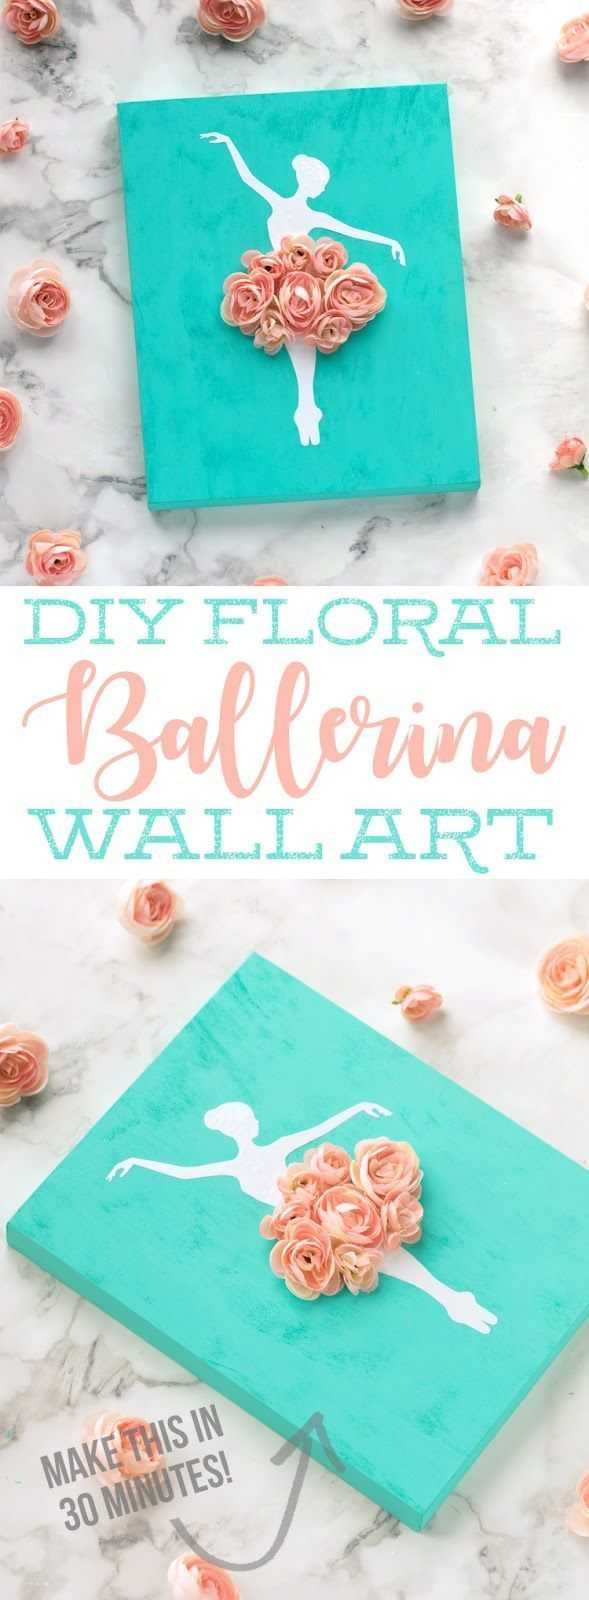 Crafts for young girls - This Diy Ballerina Wall Art Is A Simple And Inexpensive Craft You Can Make To Decorate